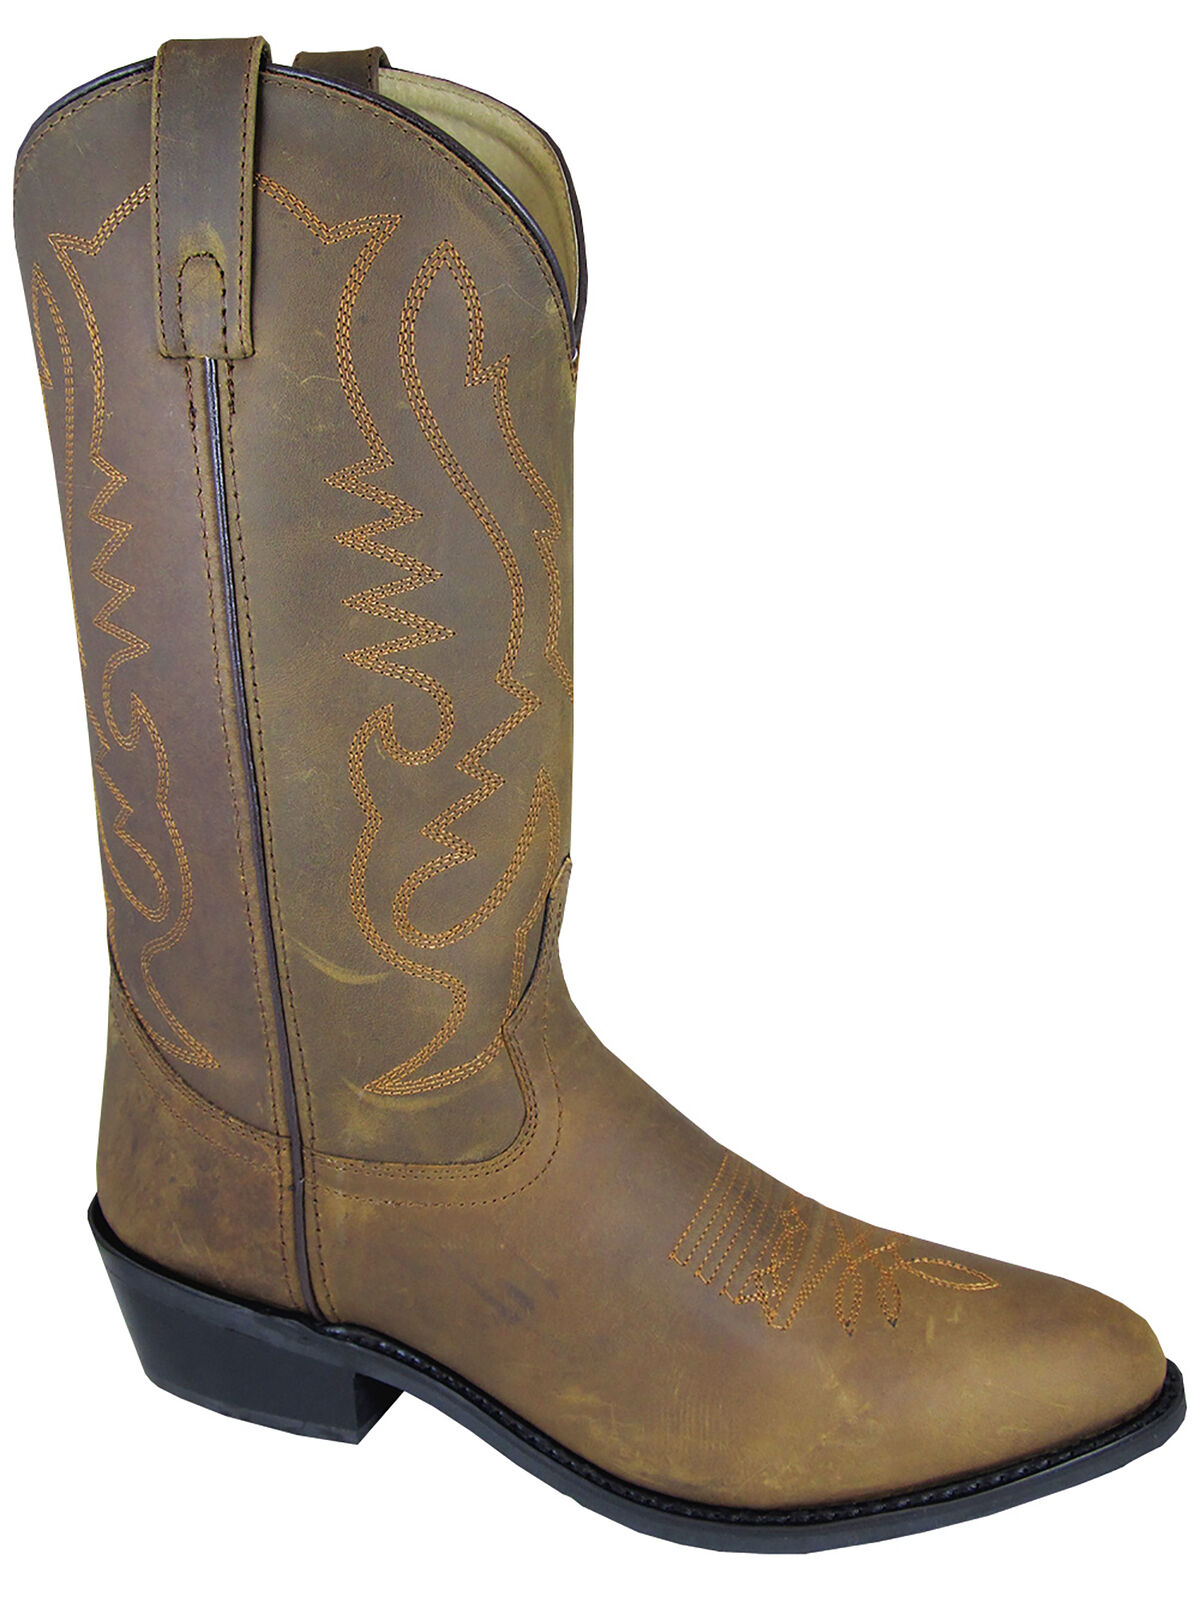 Smoky  Mountain Mens Denver Western Cowboy Boots Leather Embroidery Pull On Brown  support wholesale retail